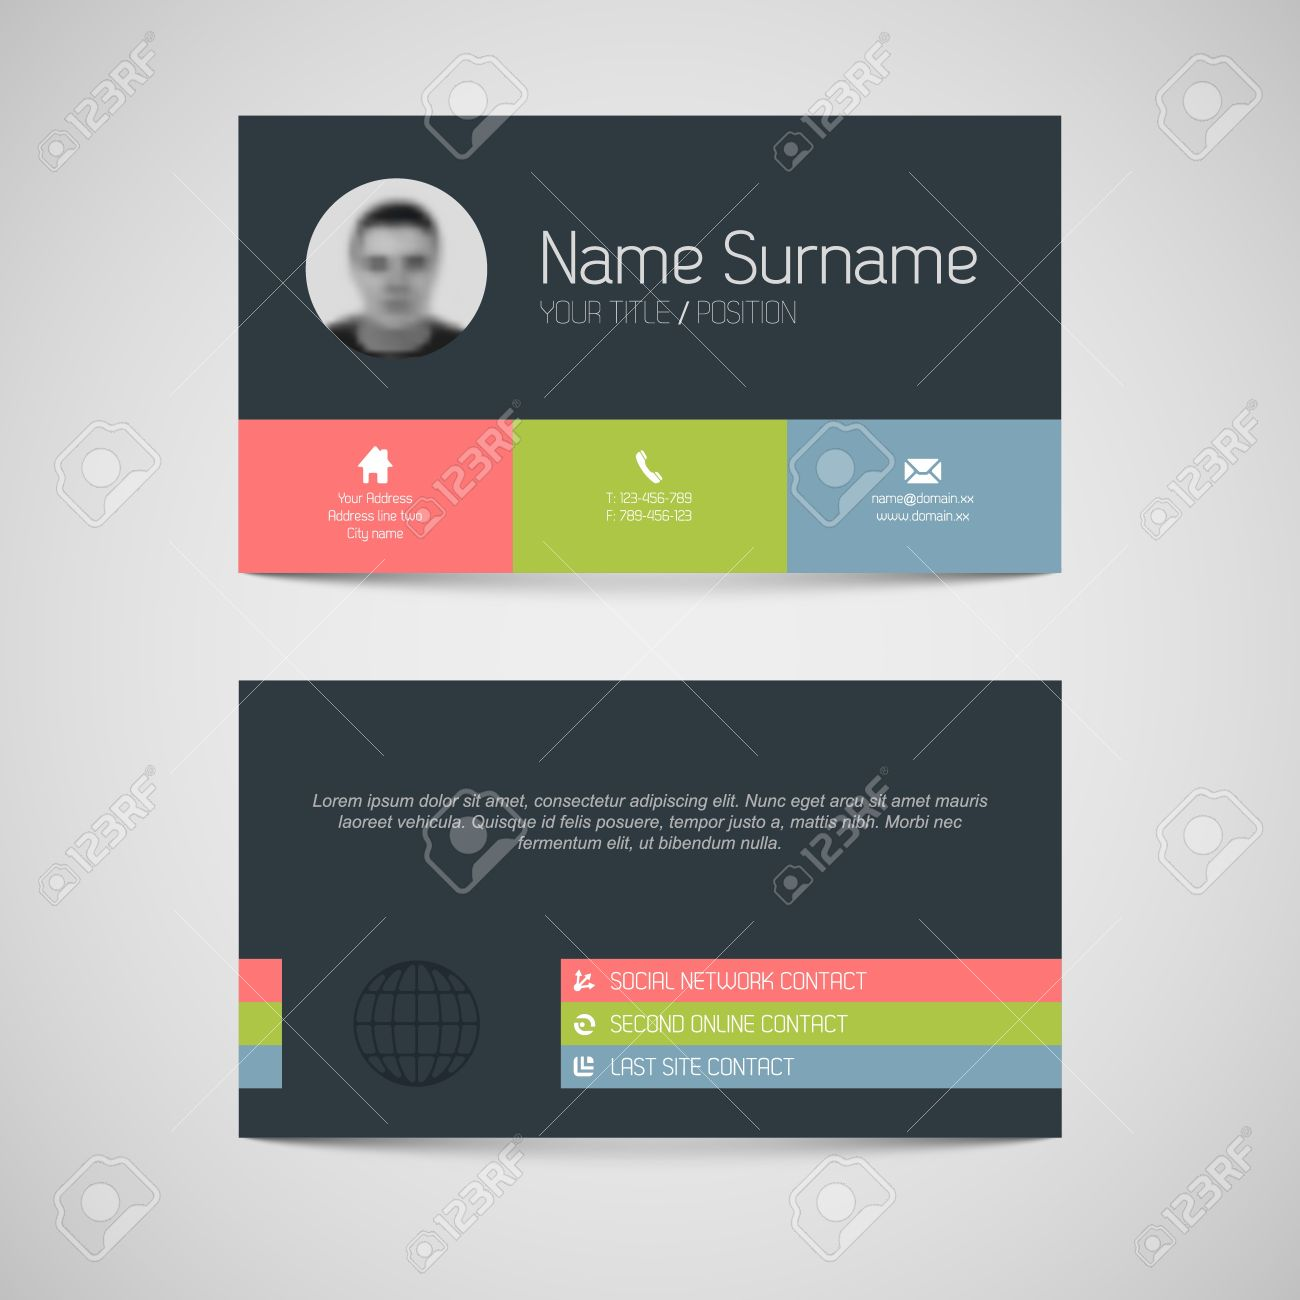 modern simple dark business card template flat user interface modern simple dark business card template flat user interface stock vector 21766437